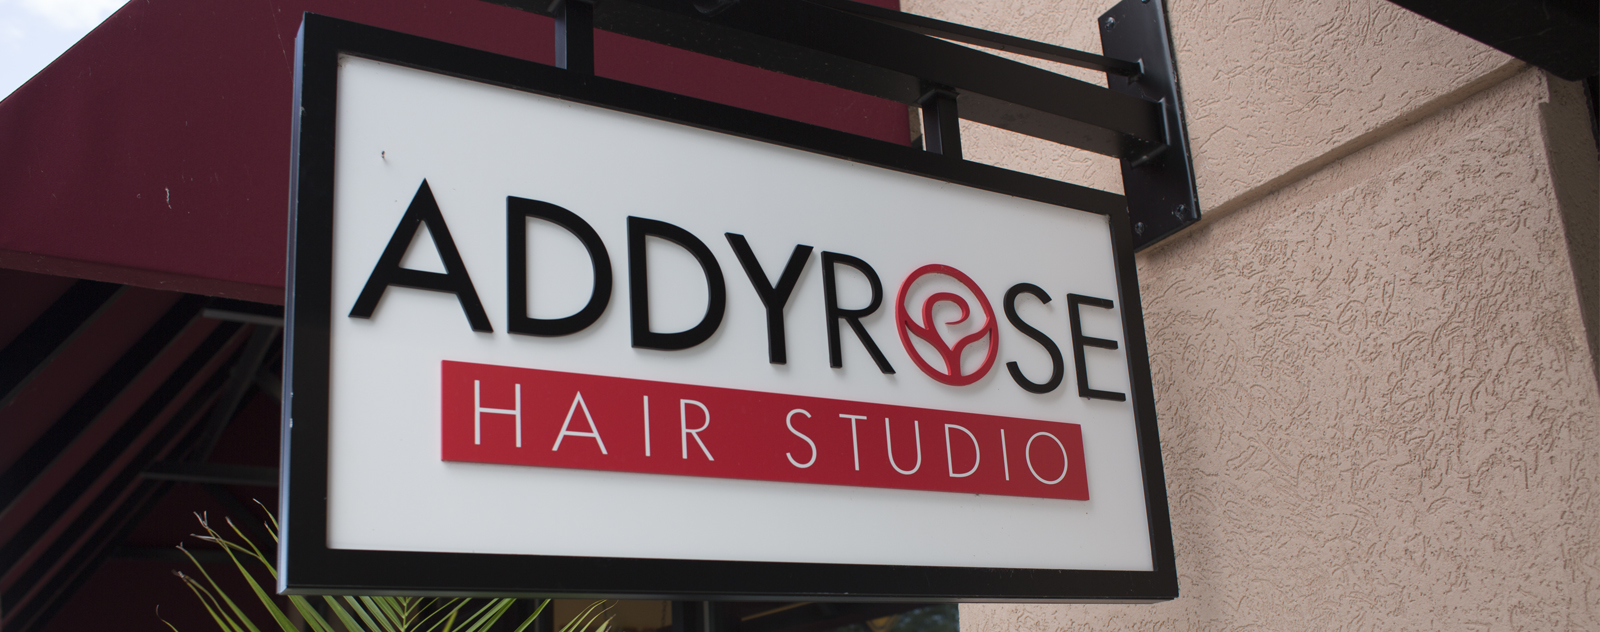 Addy Rose Hair Studio Viera Florida